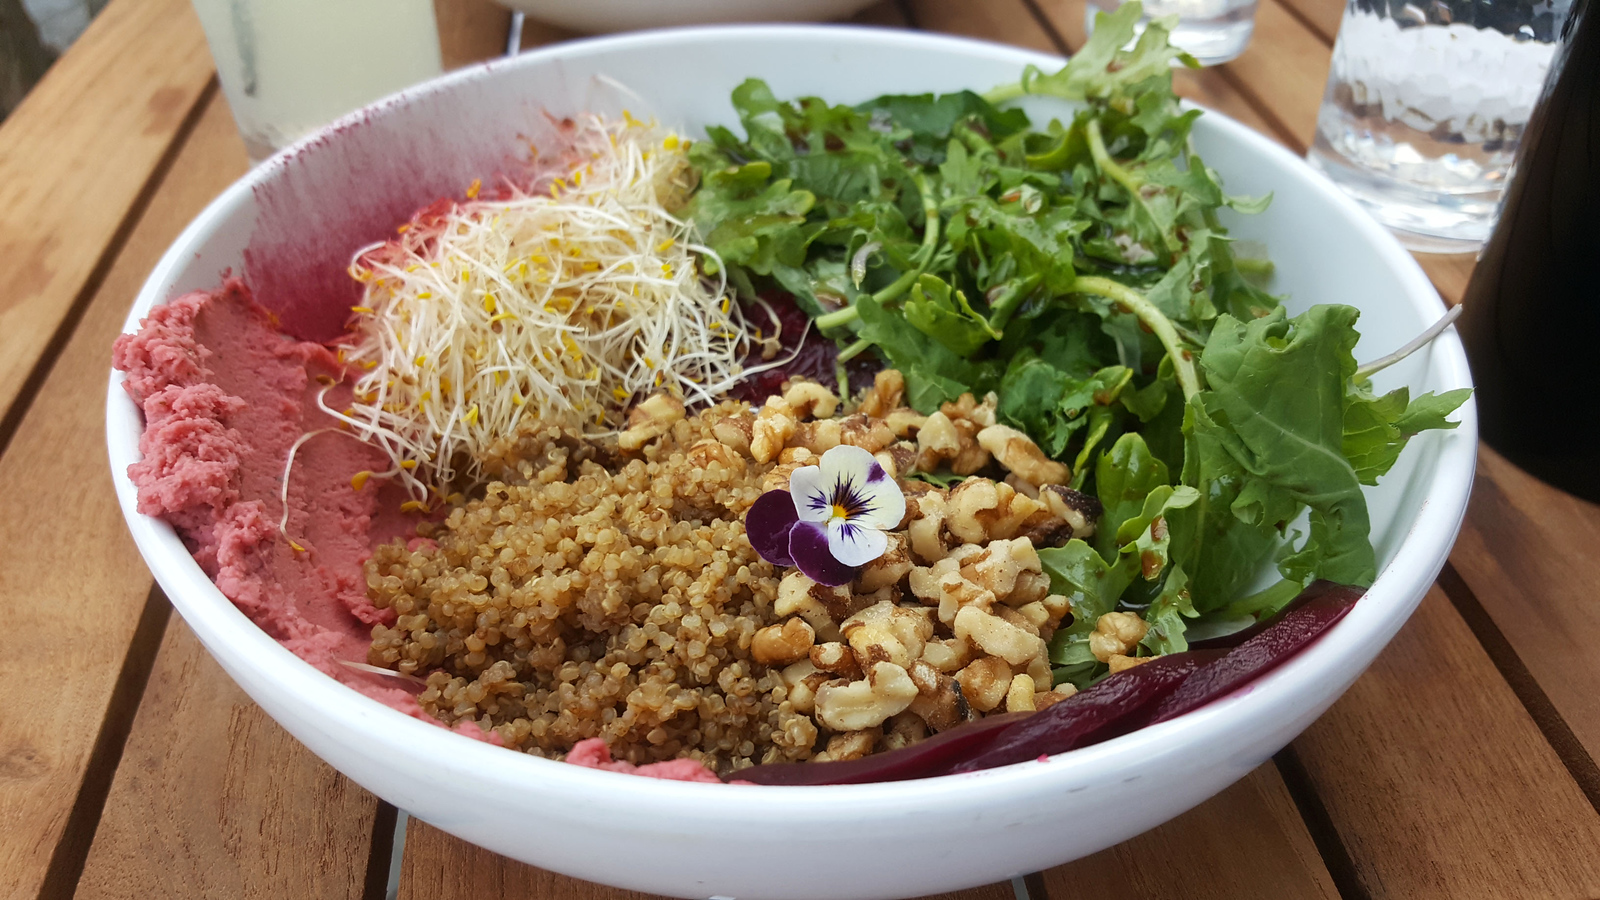 Vegan Restaurants in Winnipeg: A Winnipeg Vegan Guide - Thermea Spa